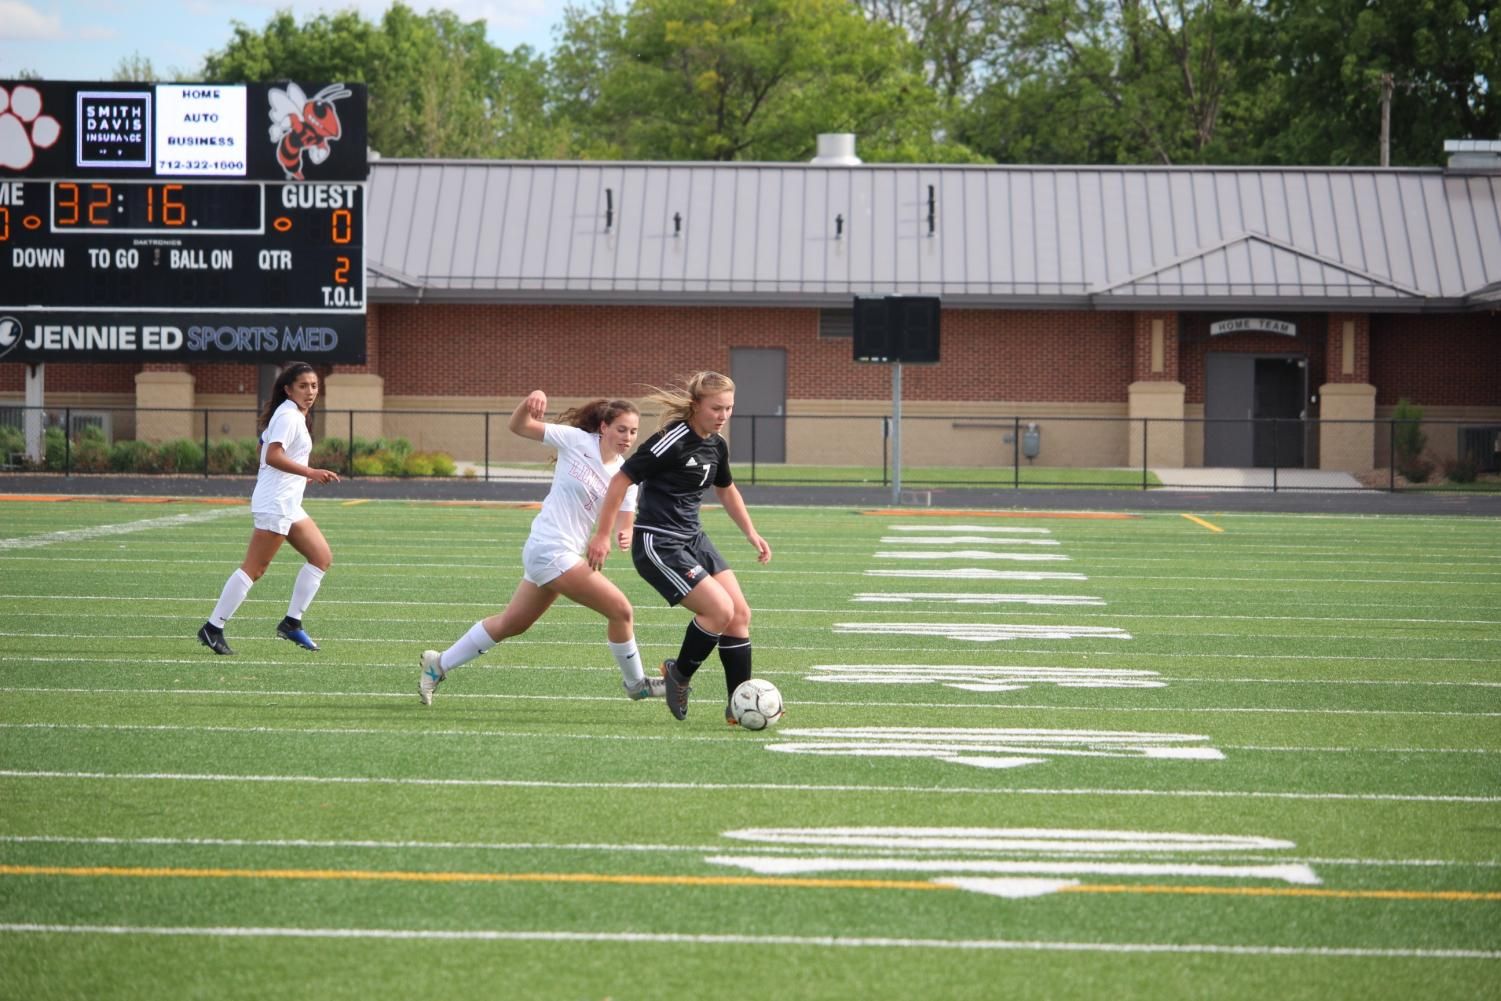 Allison Schubert keeping the ball away from one of the Bishop Heelan girls.